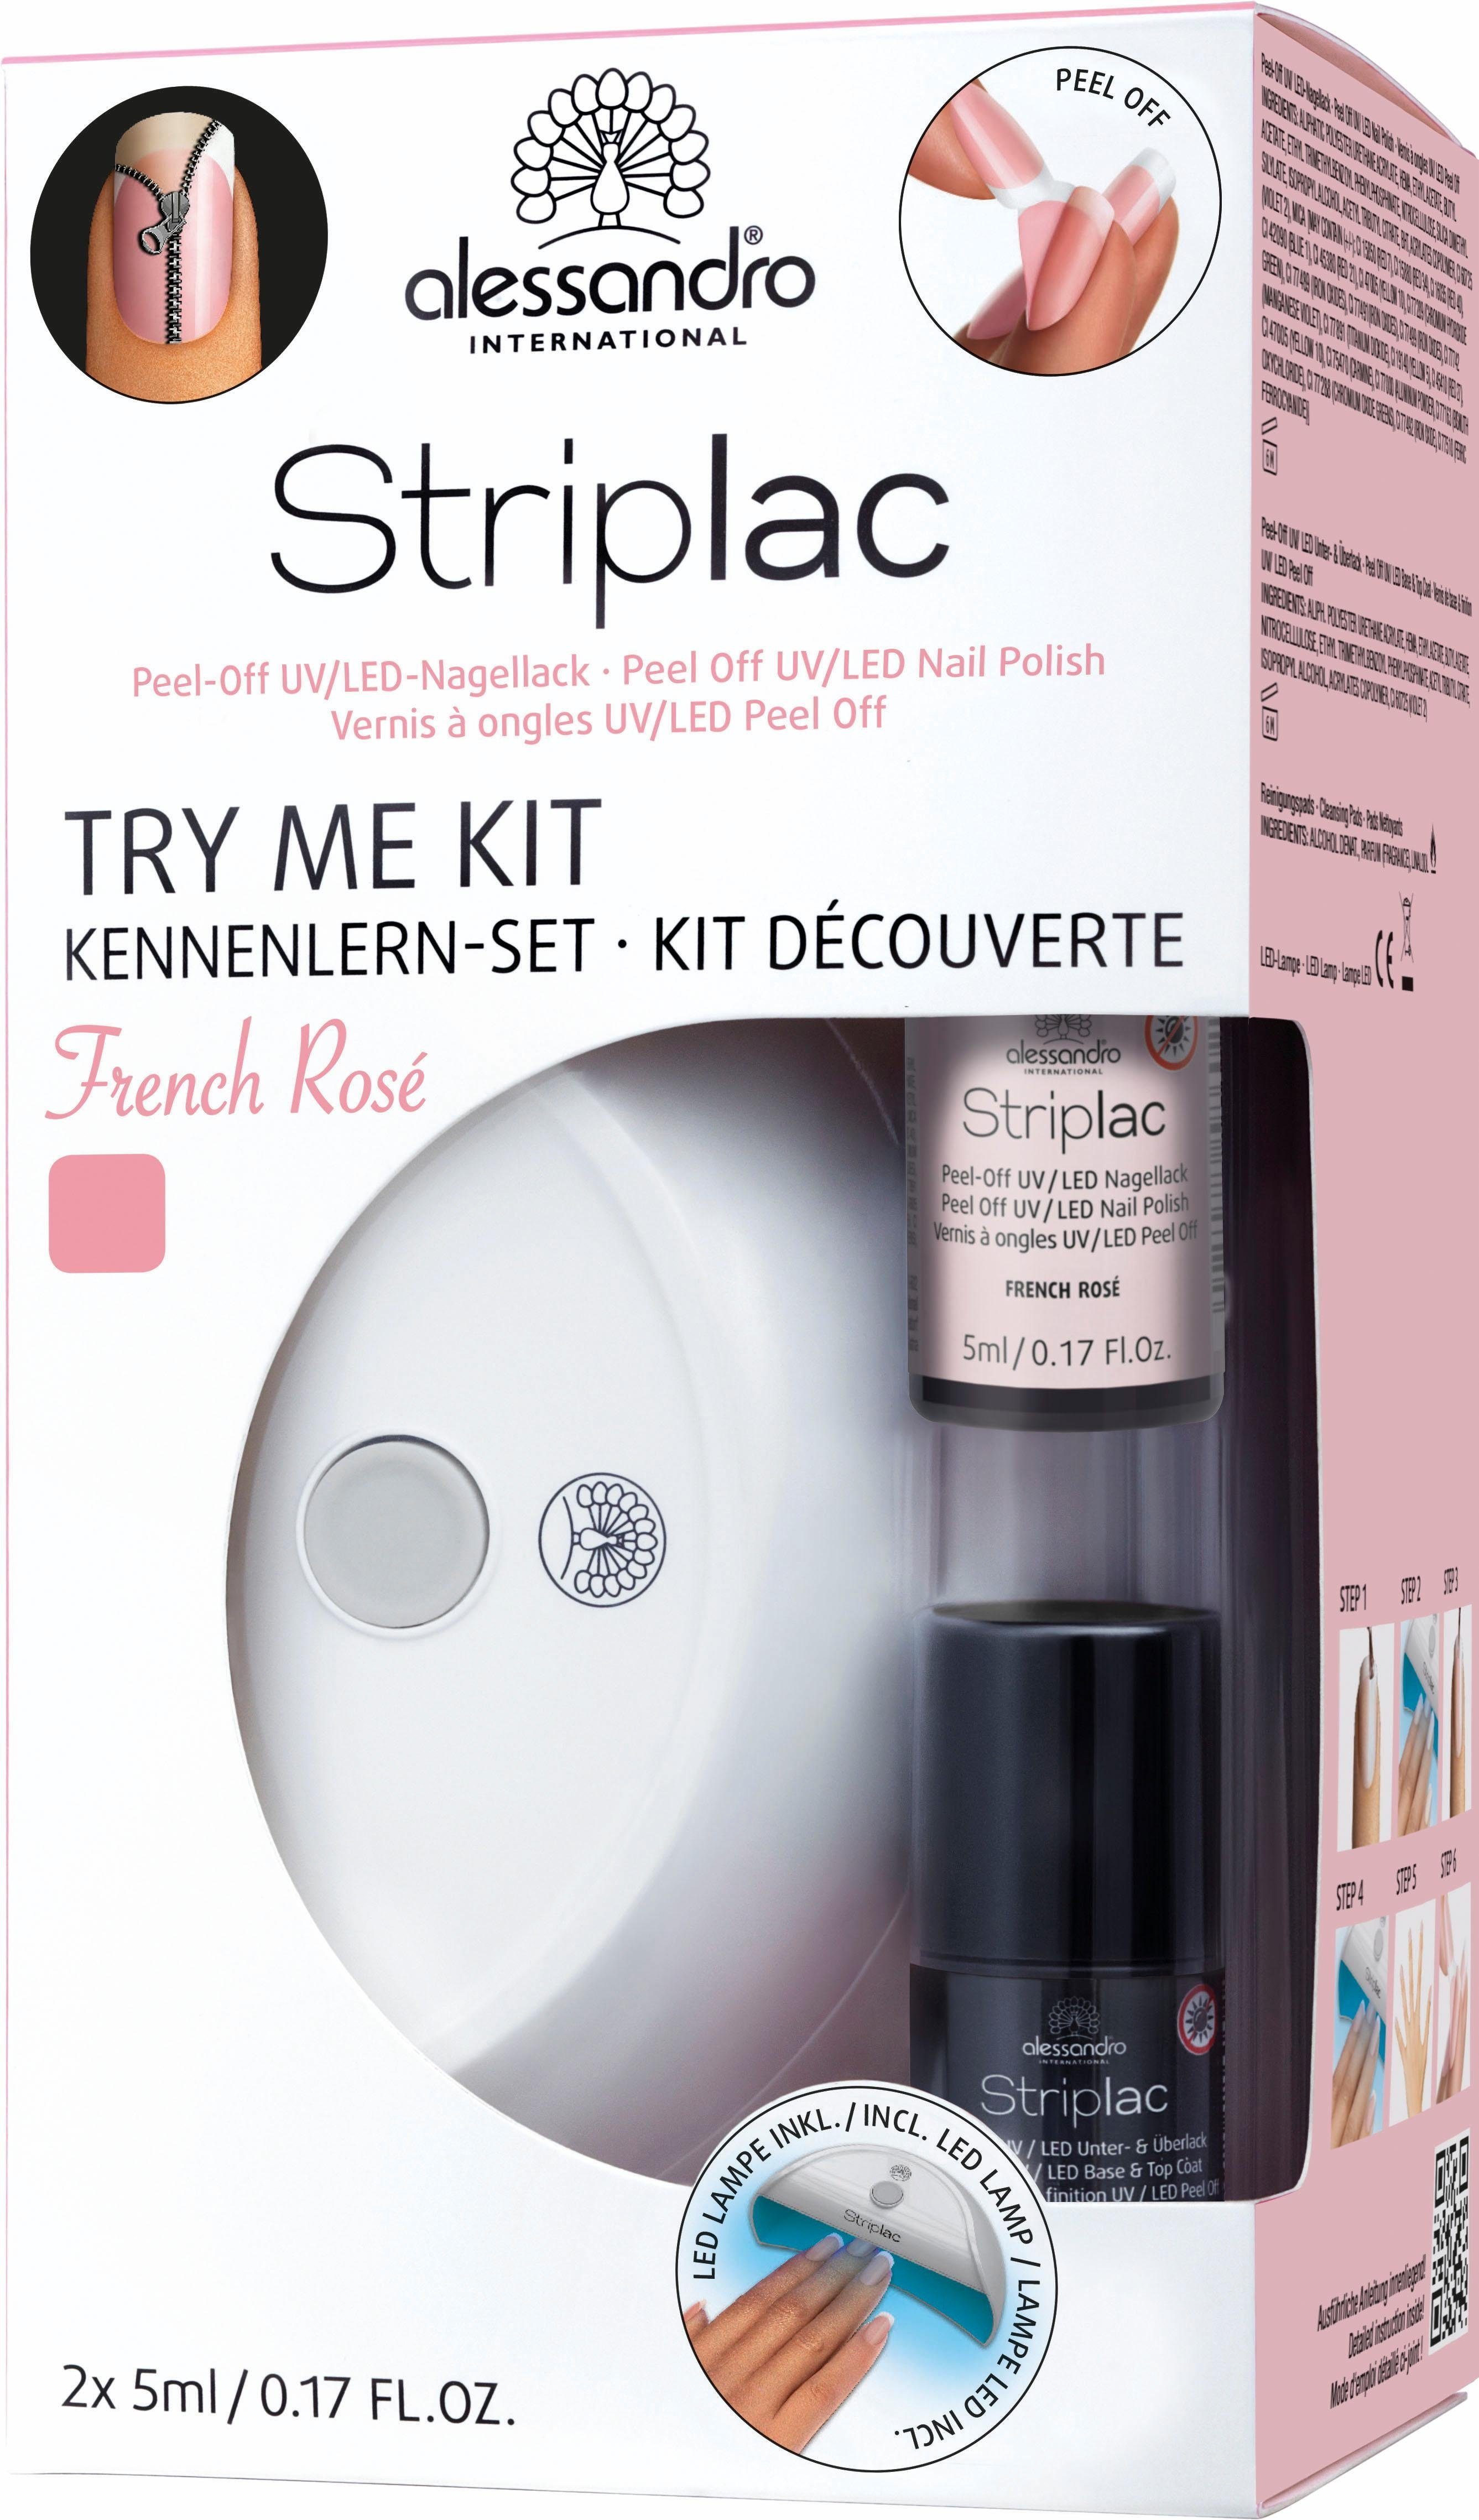 alessandro International, »Striplac Try Me Kit French Rosé«, Nagellack-Set